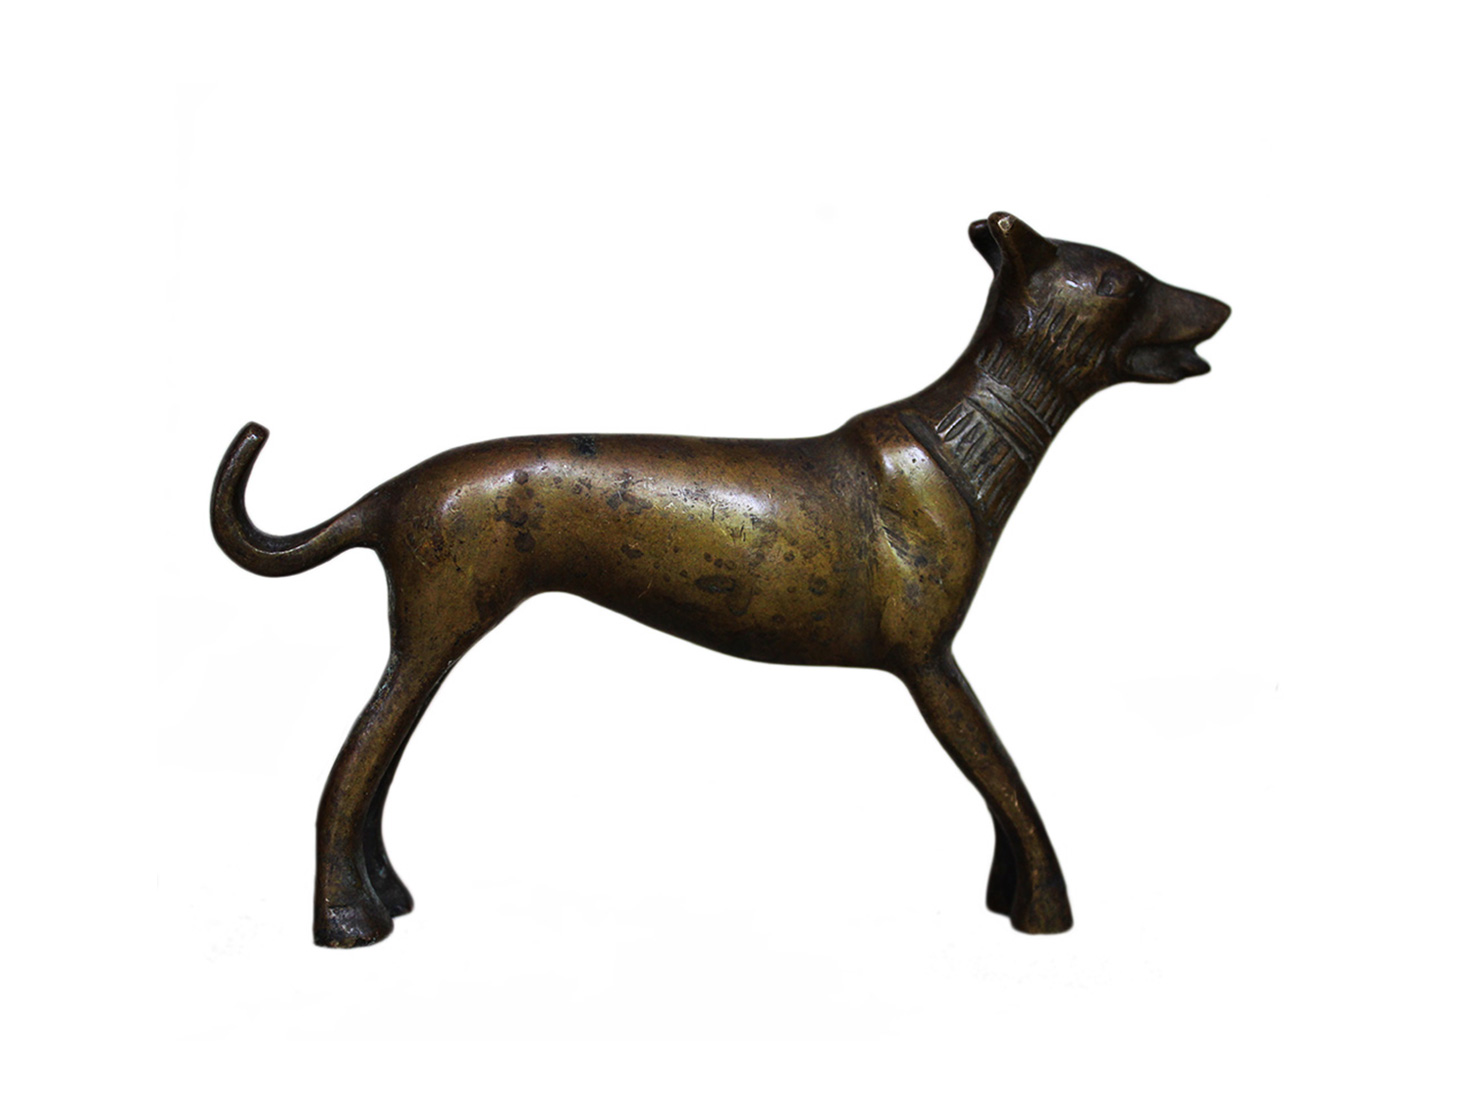 Brass Dog Ht-3.75 Inches